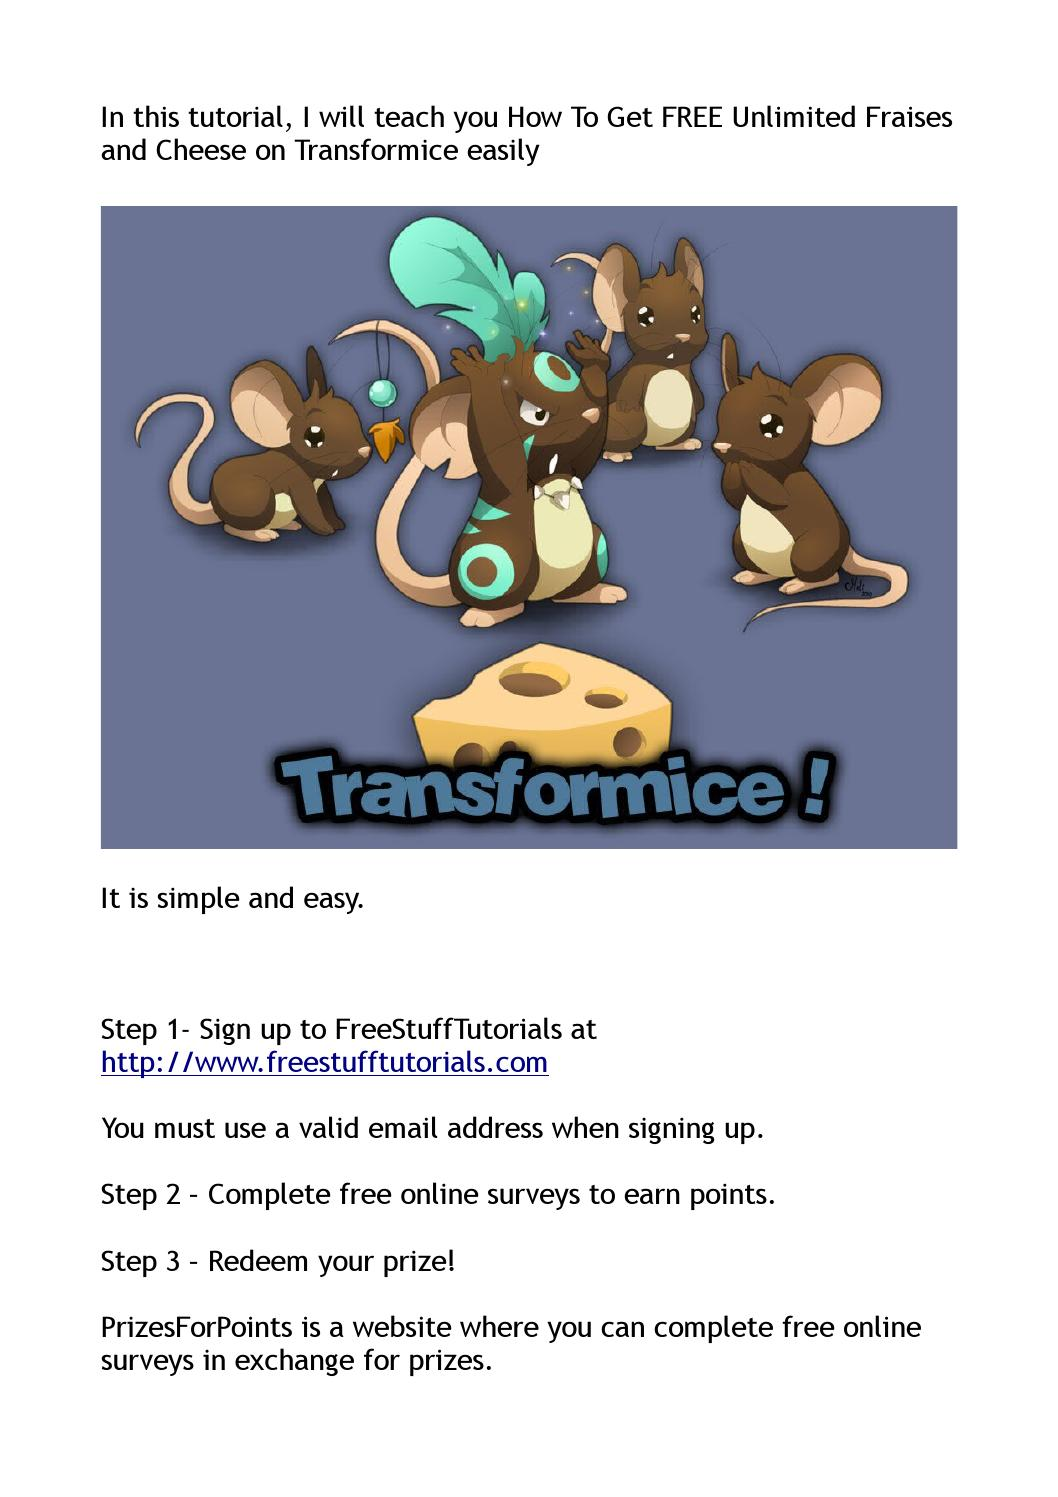 How To Get FREE Unlimited Fraises and Cheese on Transformice